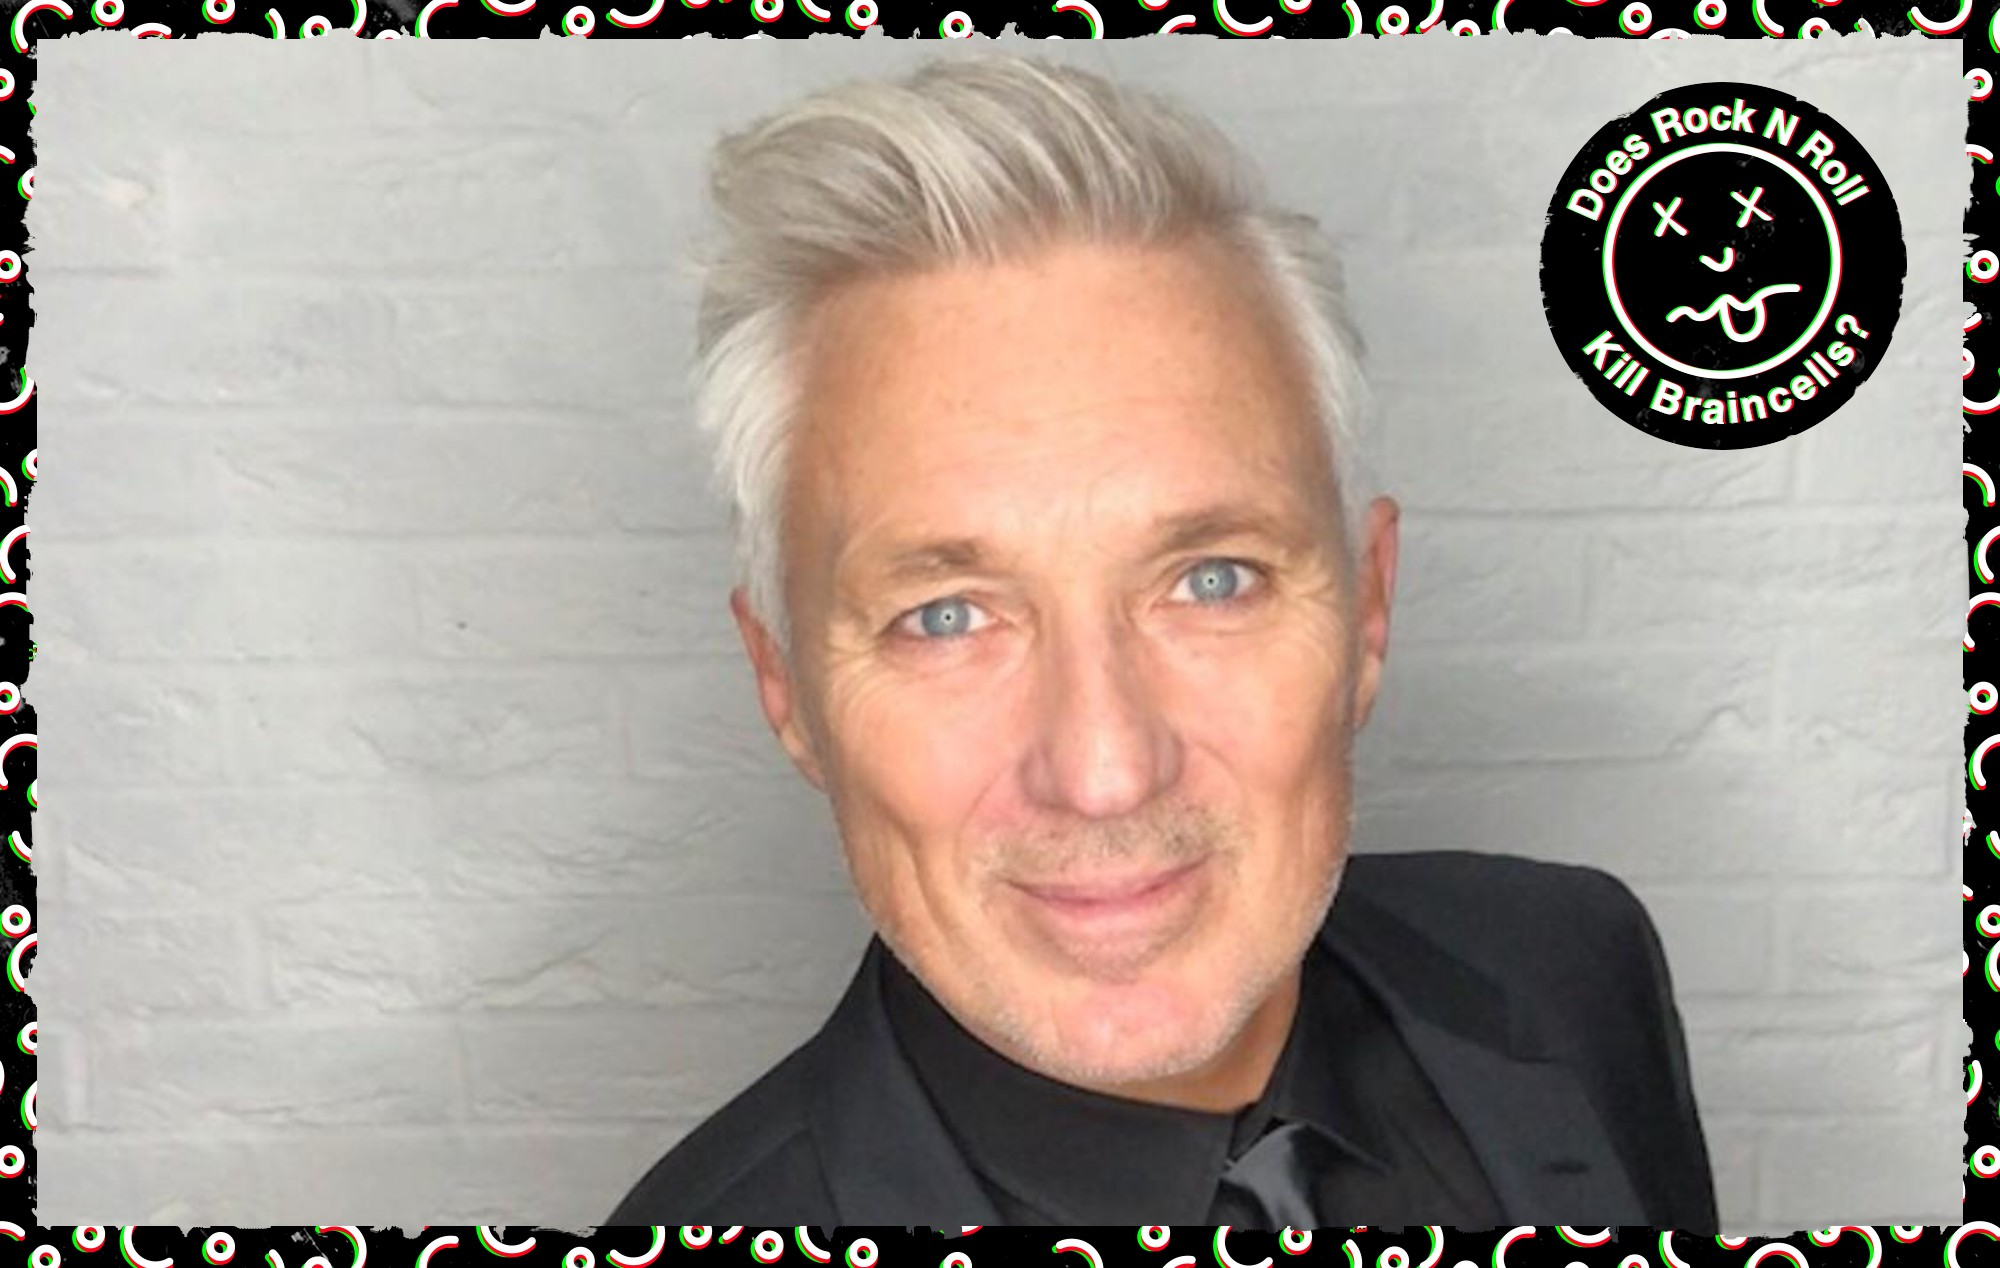 Does Rock 'N' Roll Kill Braincells?! – Martin Kemp, Spandau Ballet - NME interview